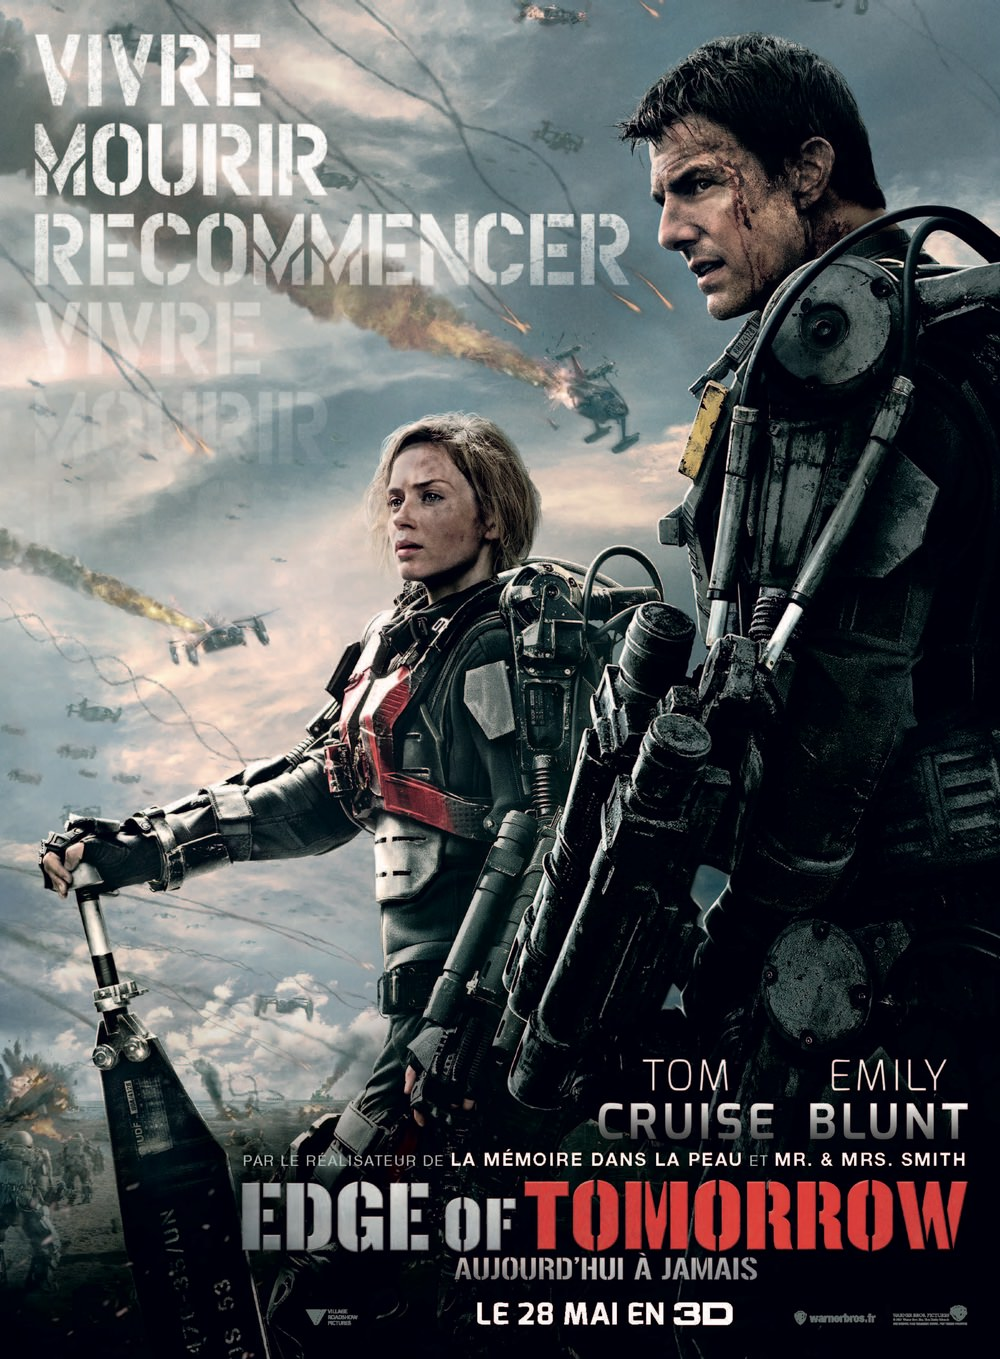 Edge of tomorrow liman